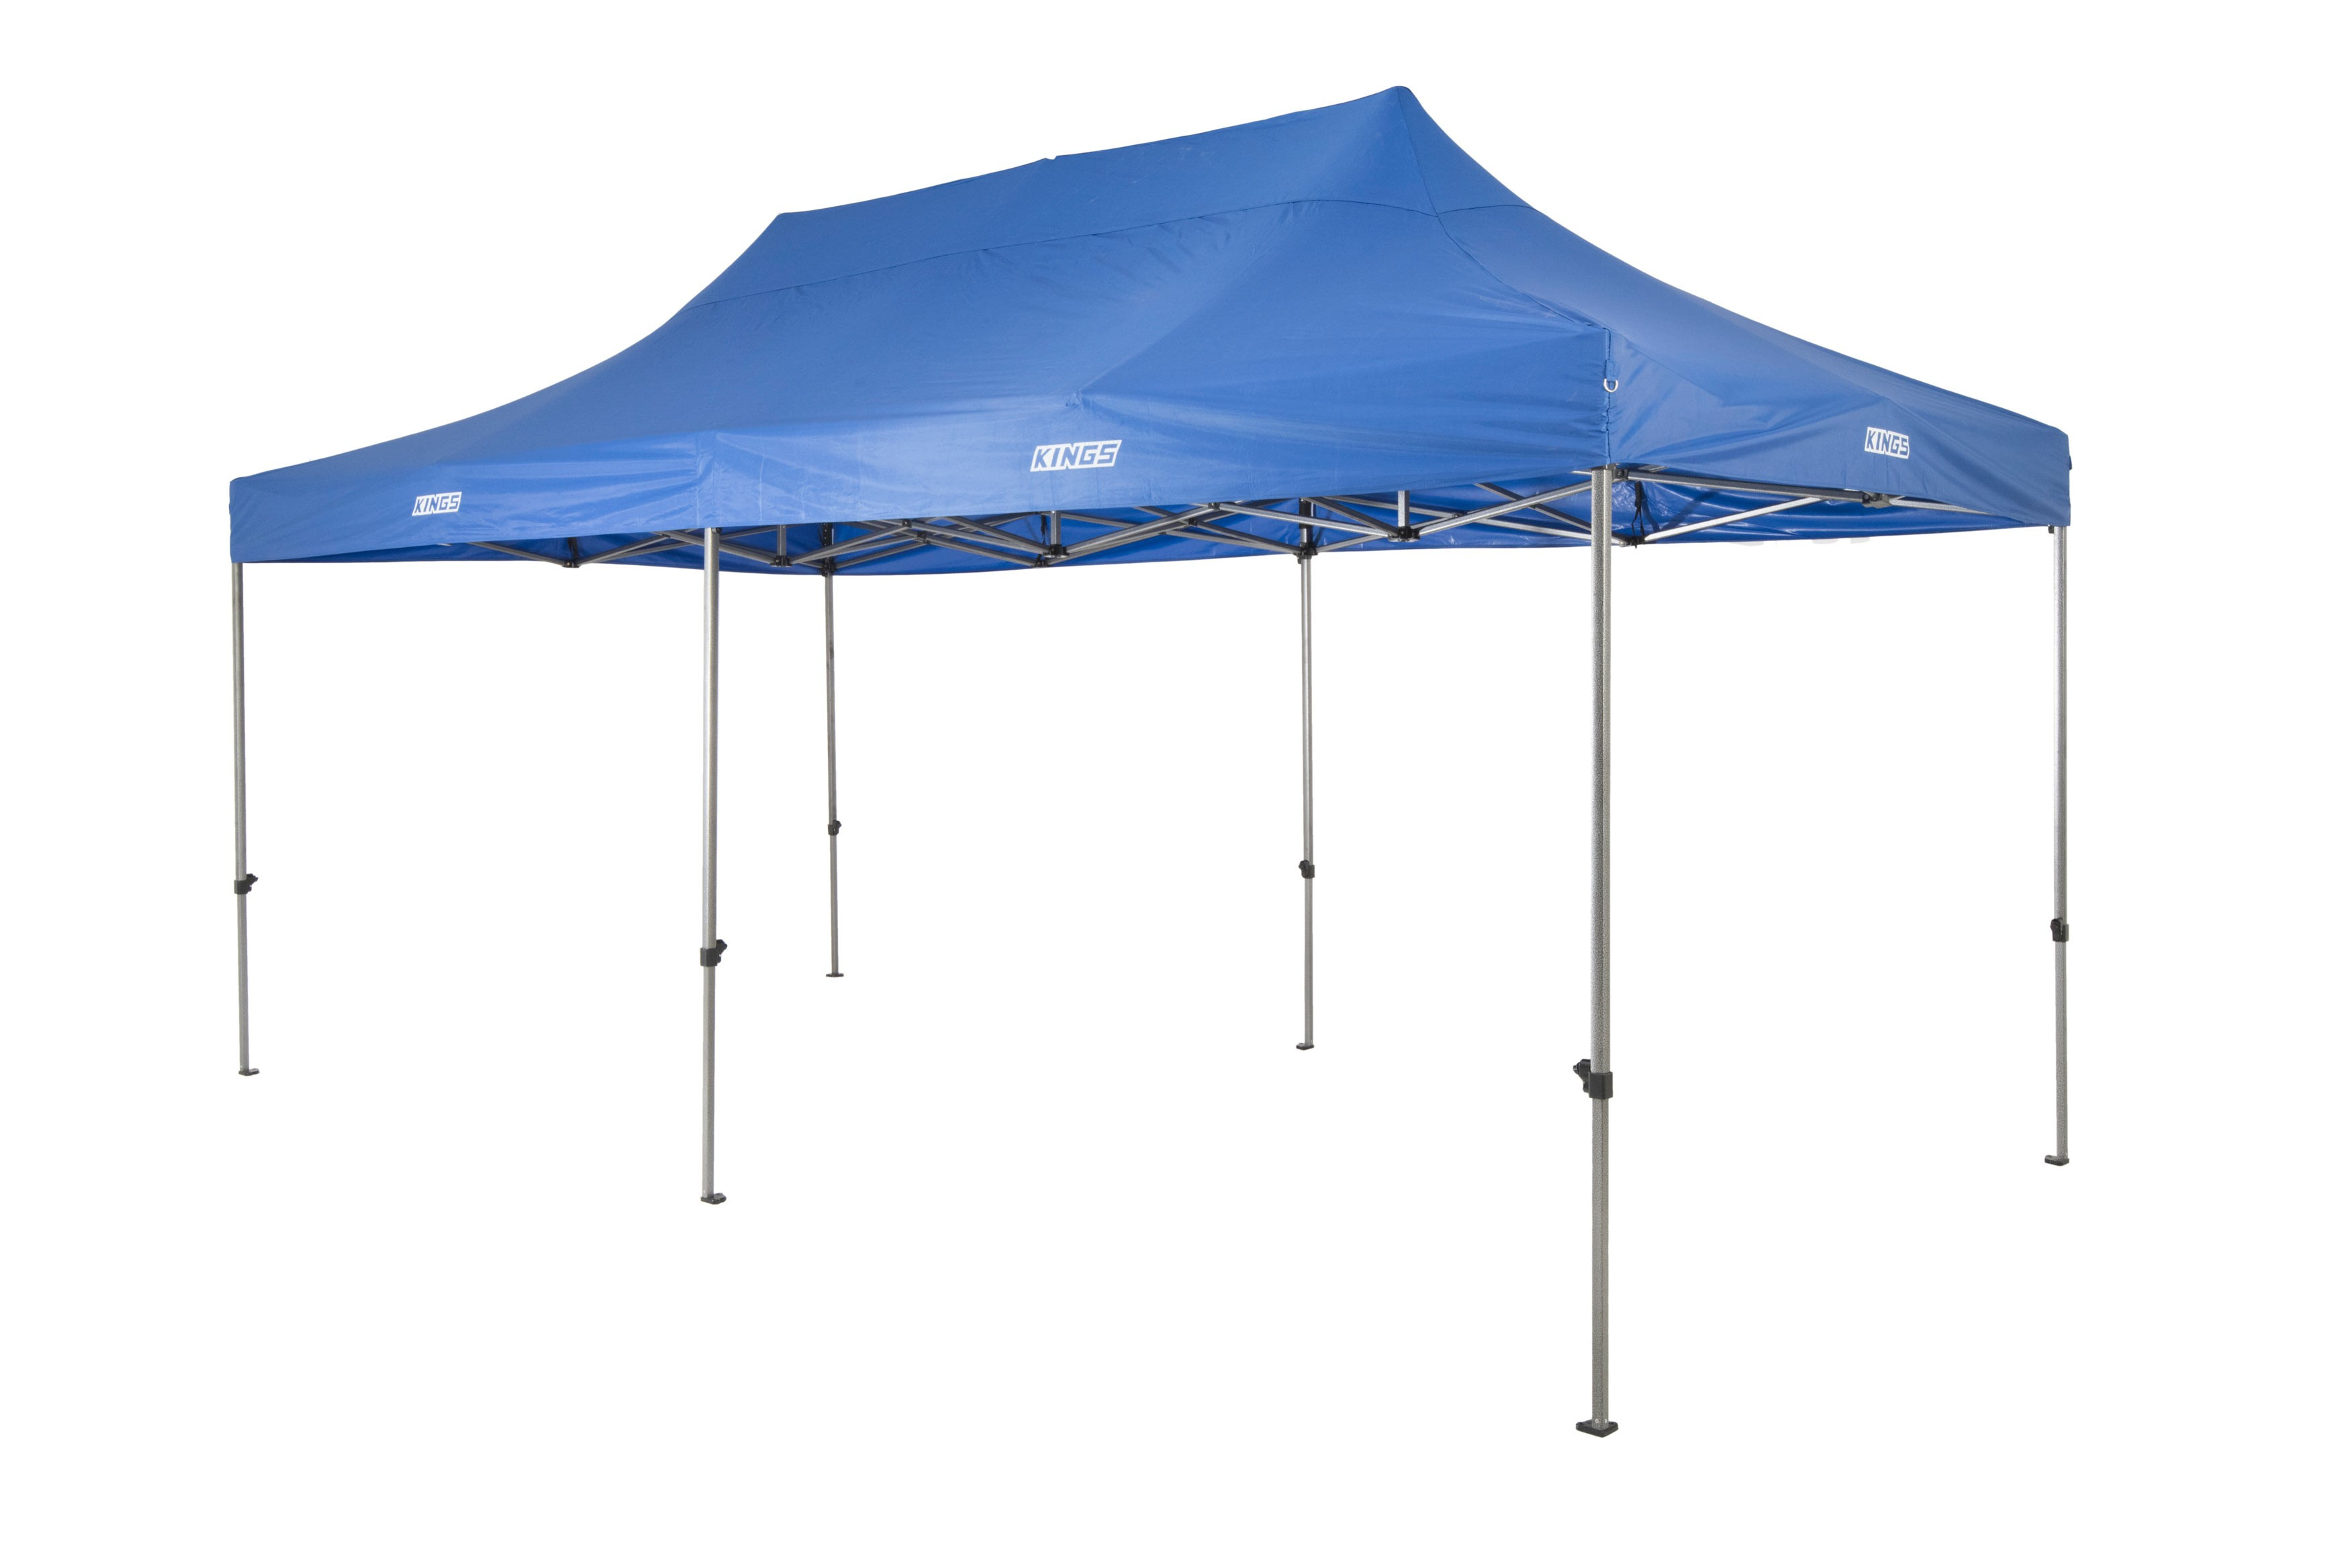 Portable Gazebo - the Smart Choice for Camping | Newswire